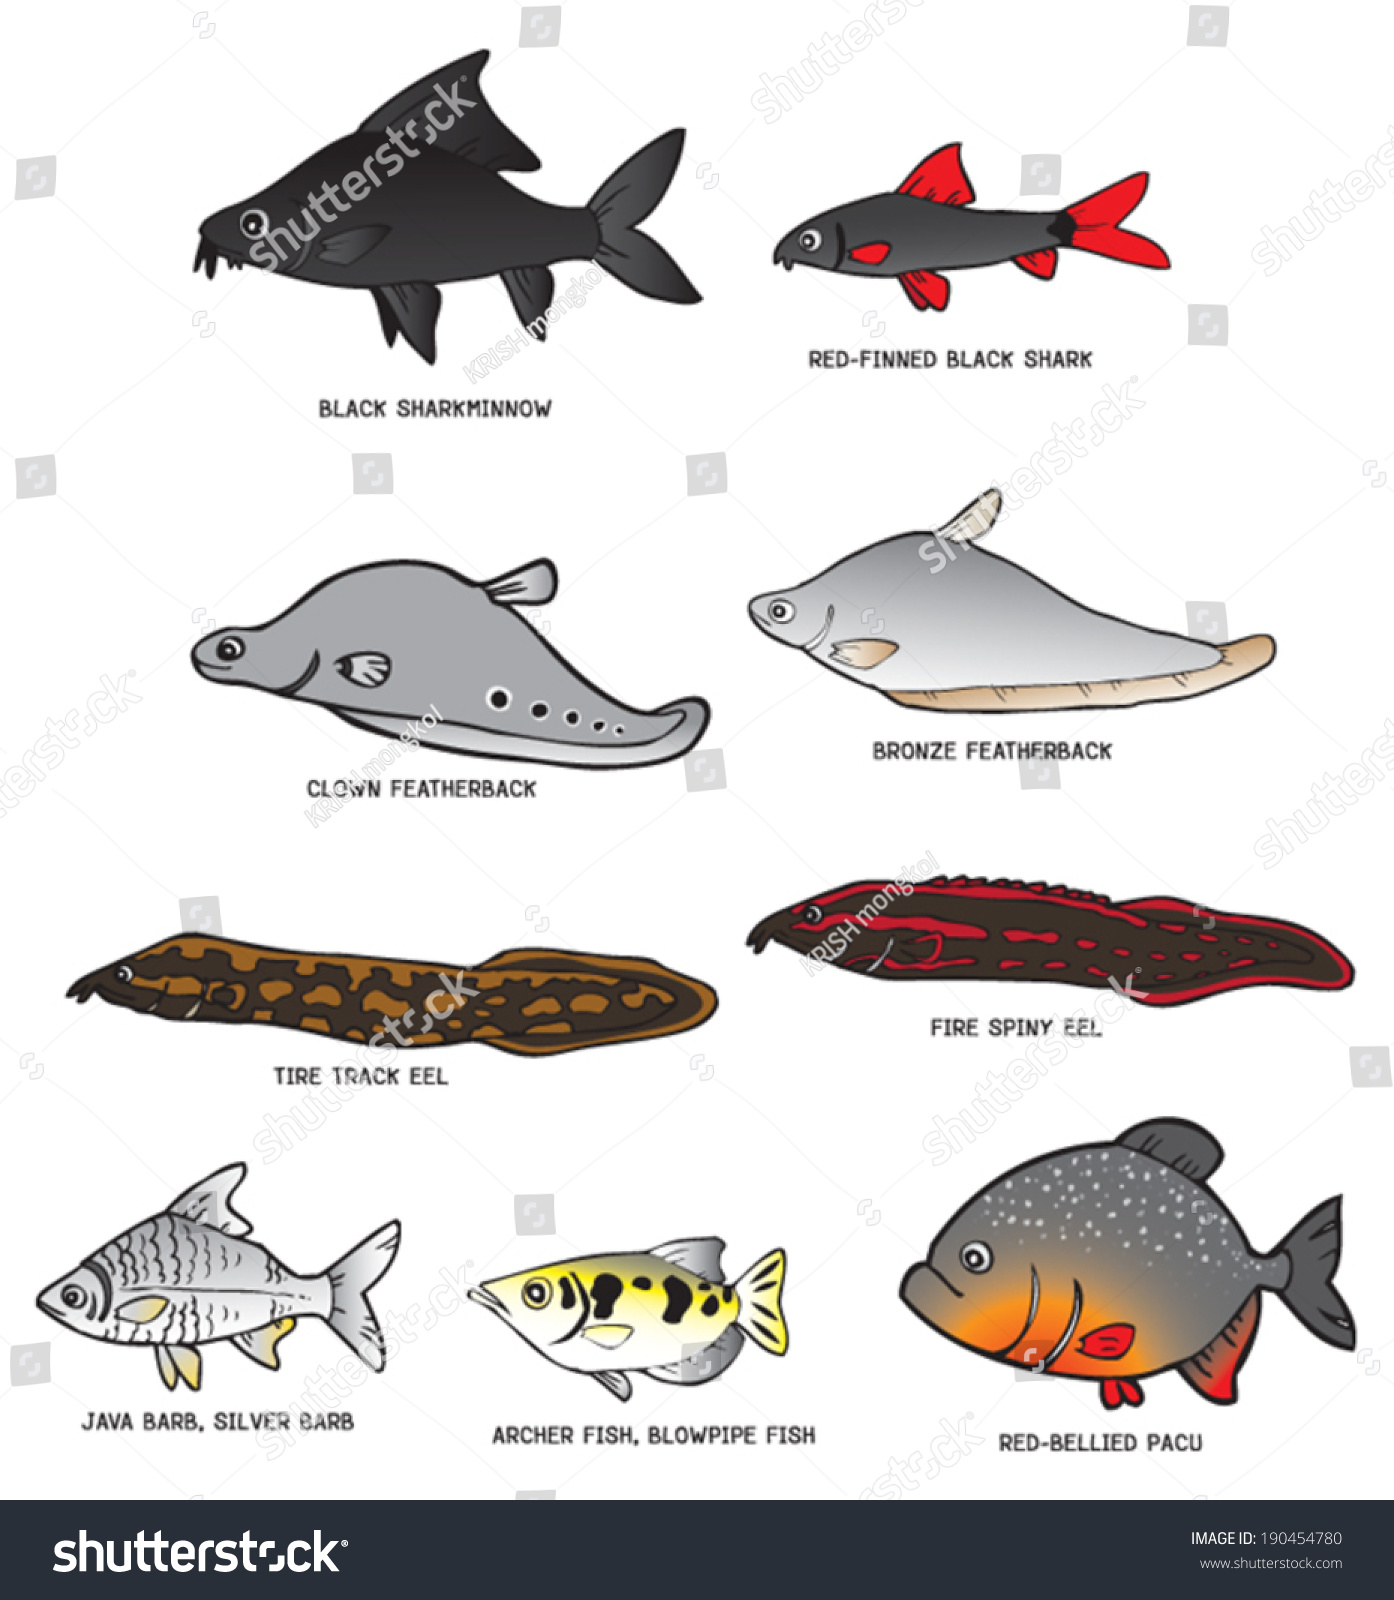 Freshwater fish in malaysia - Collection Of Fresh Water Fish From Southeast Asia And All Of Them Can Be Found In